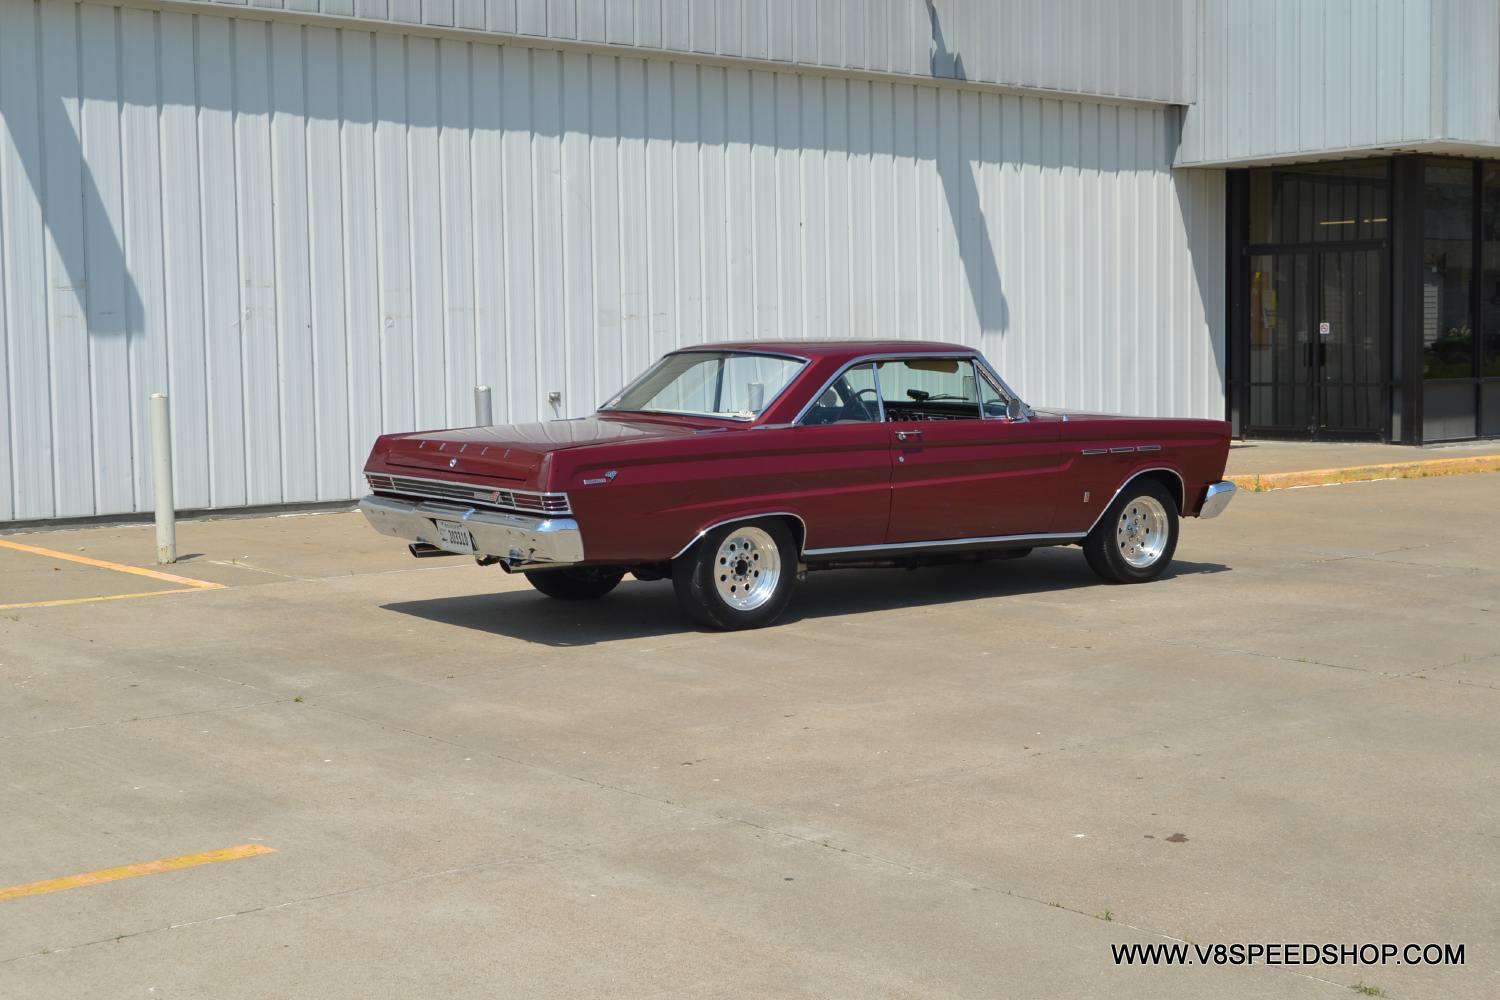 1965 Mercury Comet Cyclone Supercharged 302 Gear Vendor